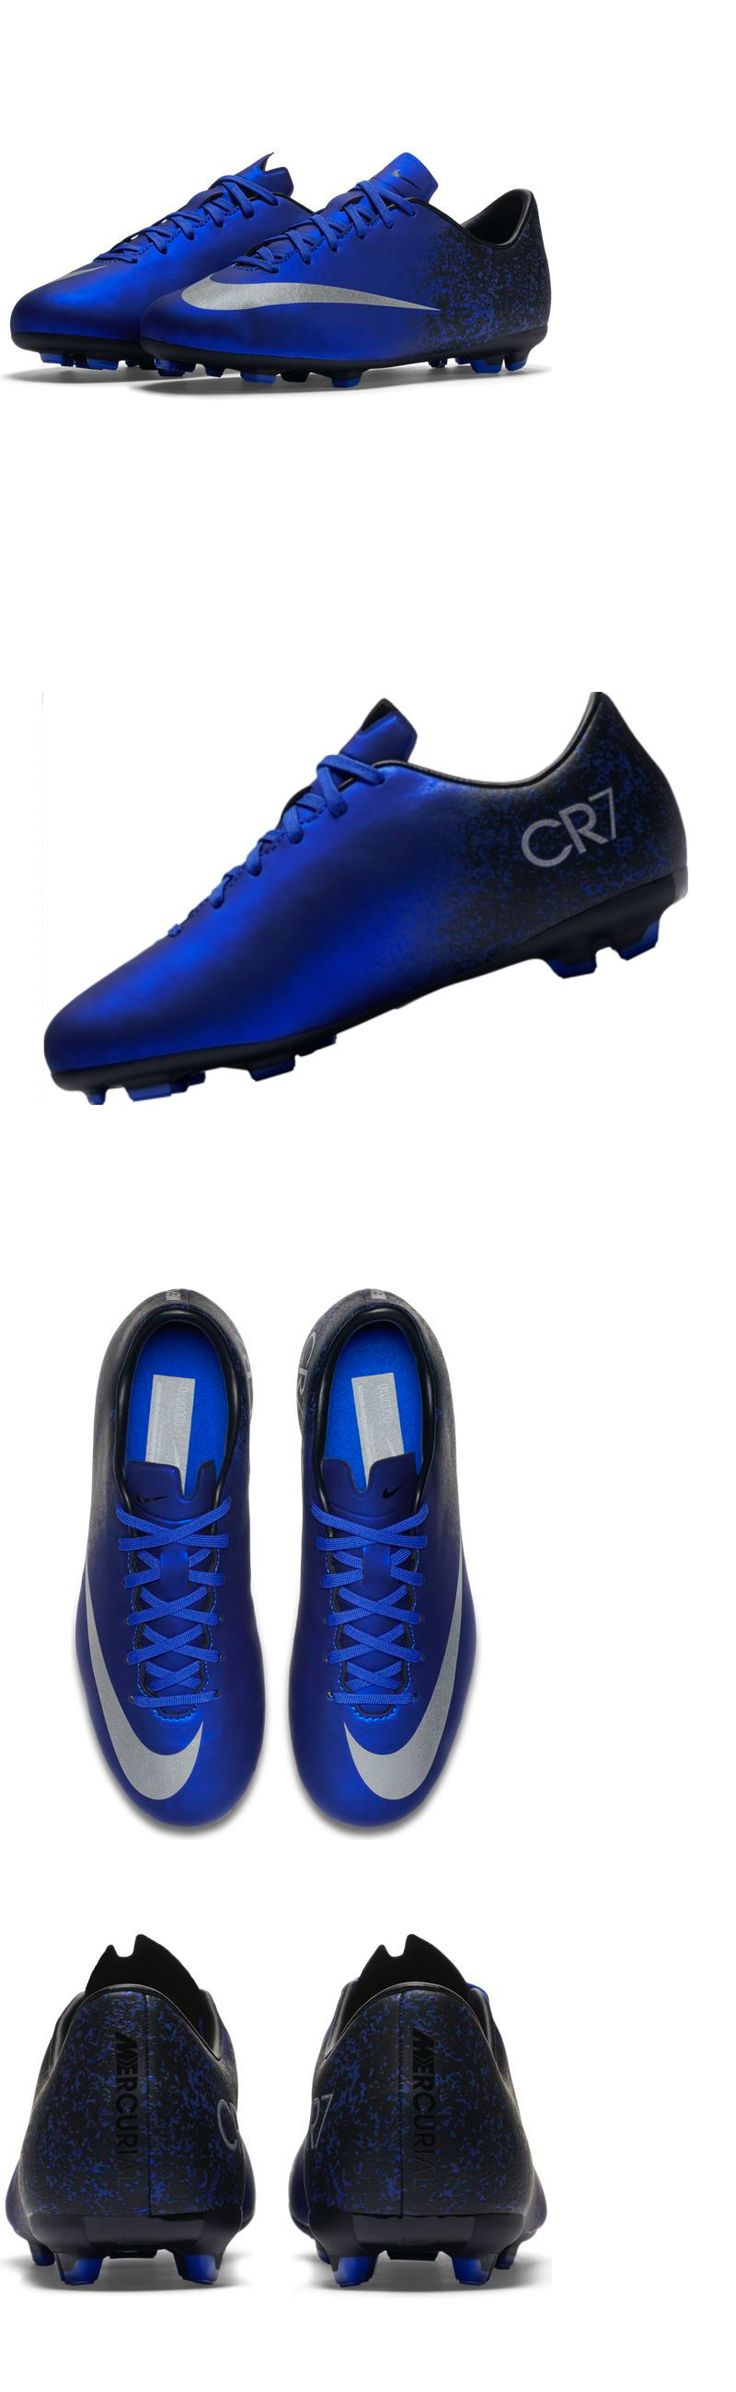 Youth 159177: Nike Jr. Mercurial Victory V Cr7 Fg Soccer Cleats Size 6Y Blue 684848-404 -> BUY IT NOW ONLY: $49.99 on eBay!